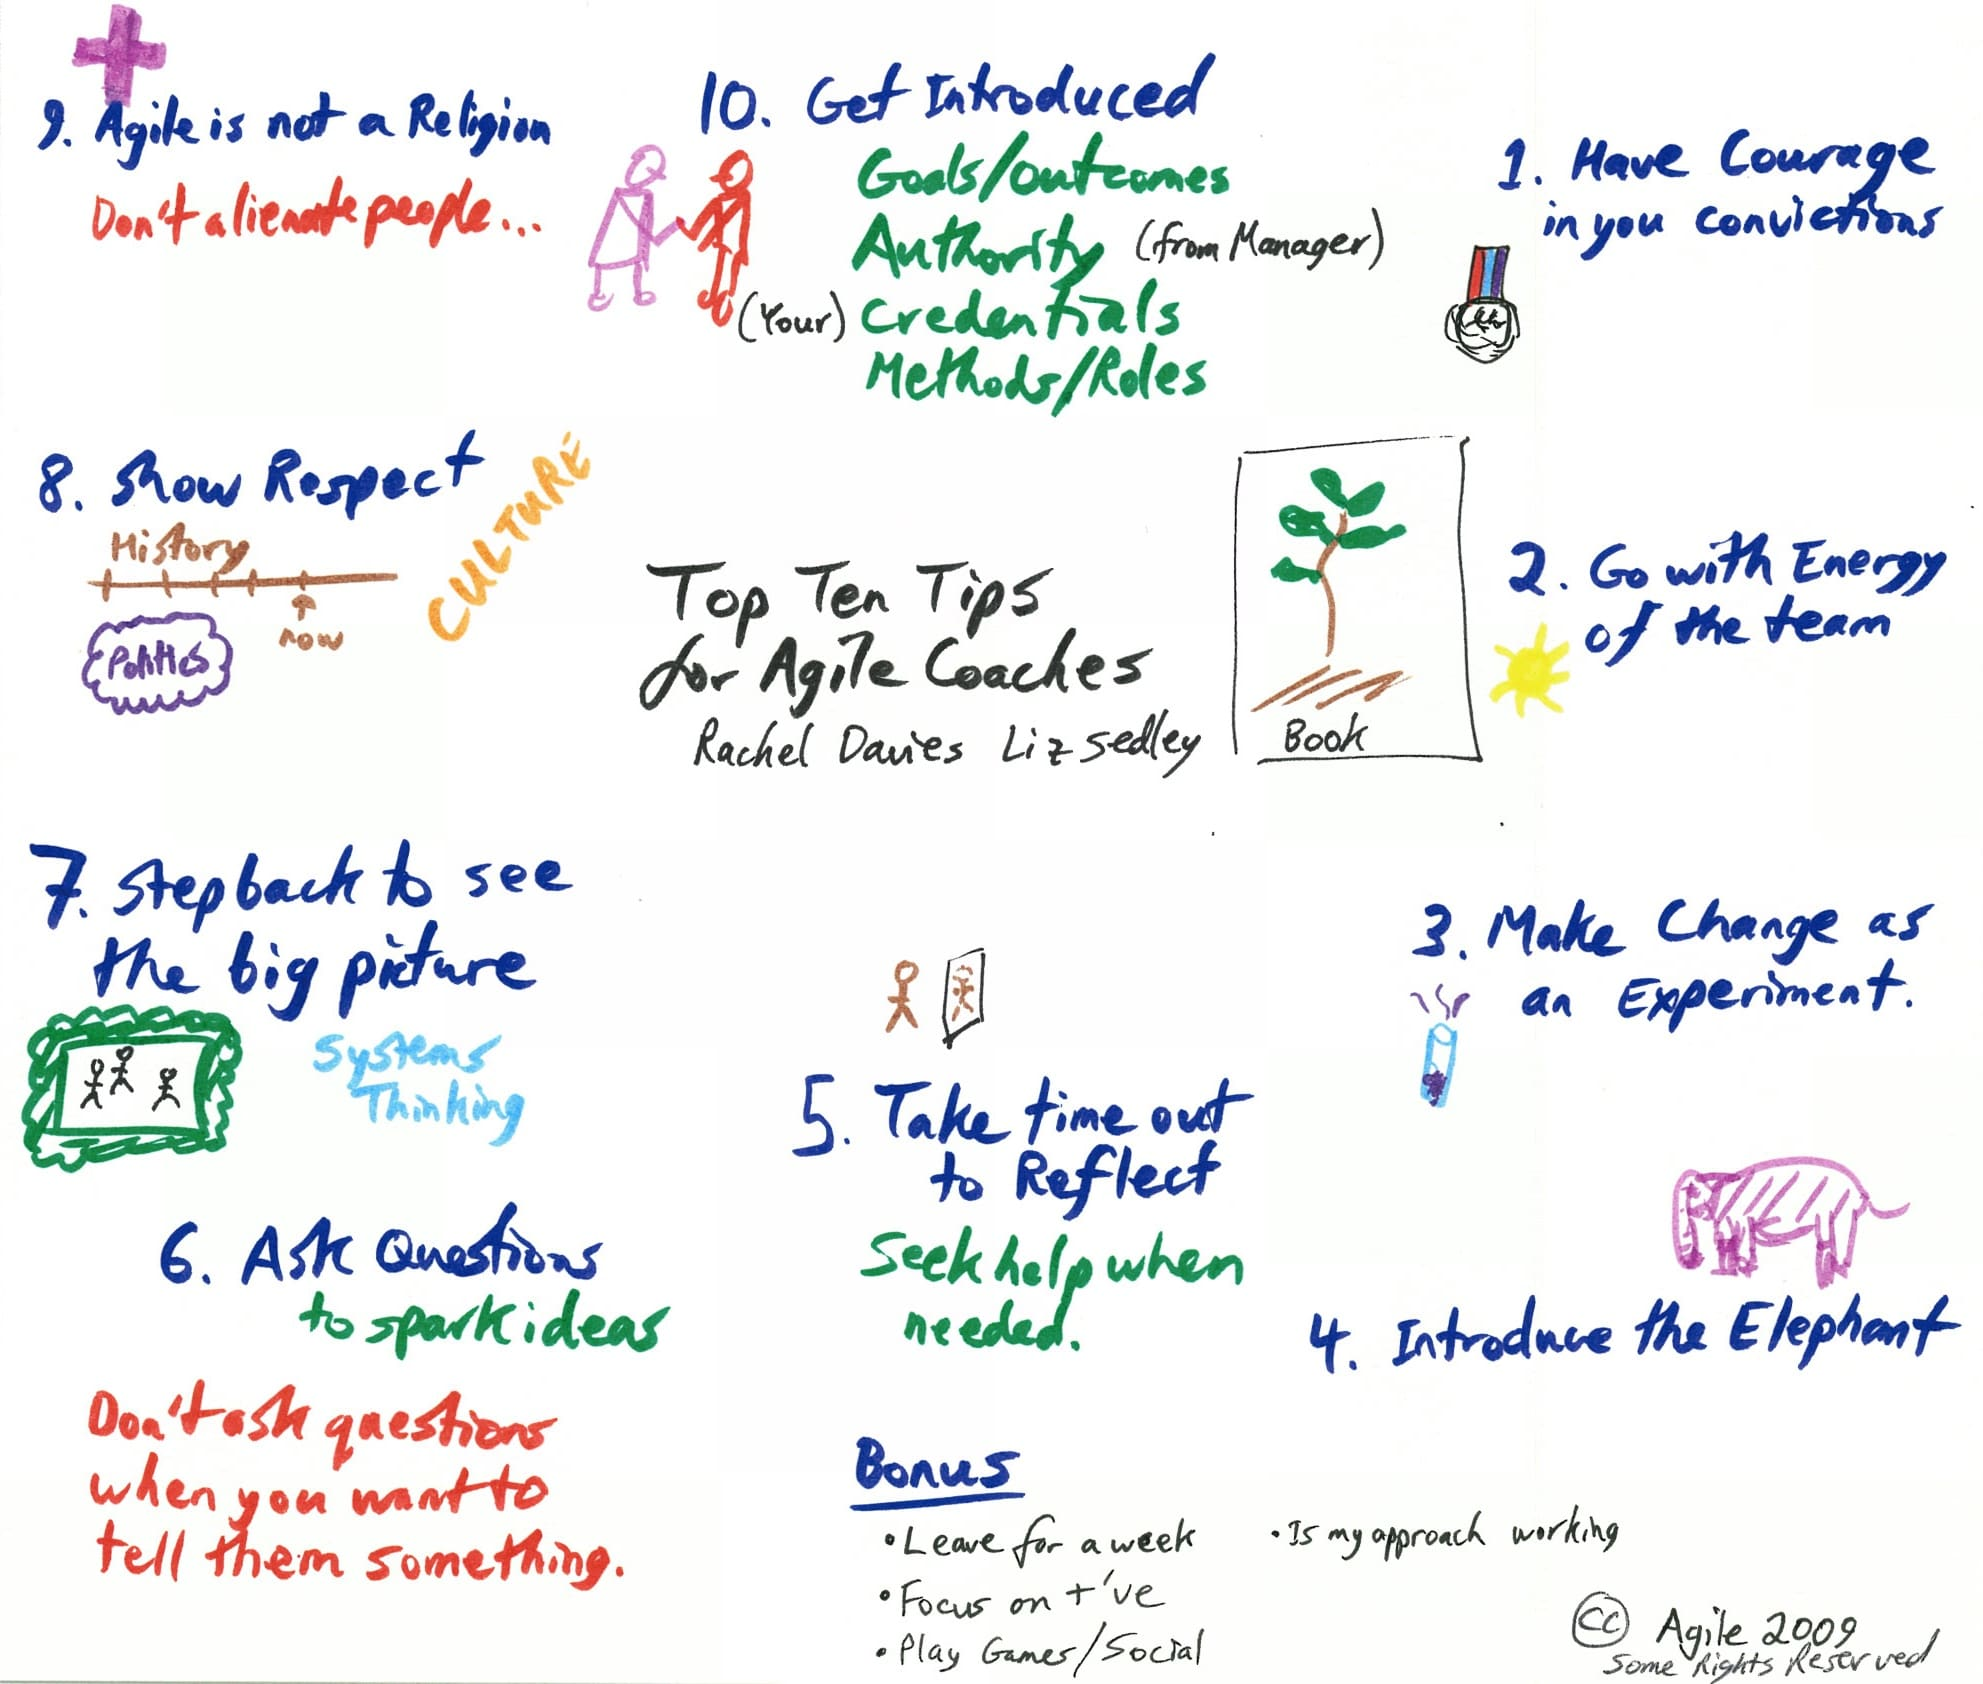 Top 10 Tips for Agile Coaches